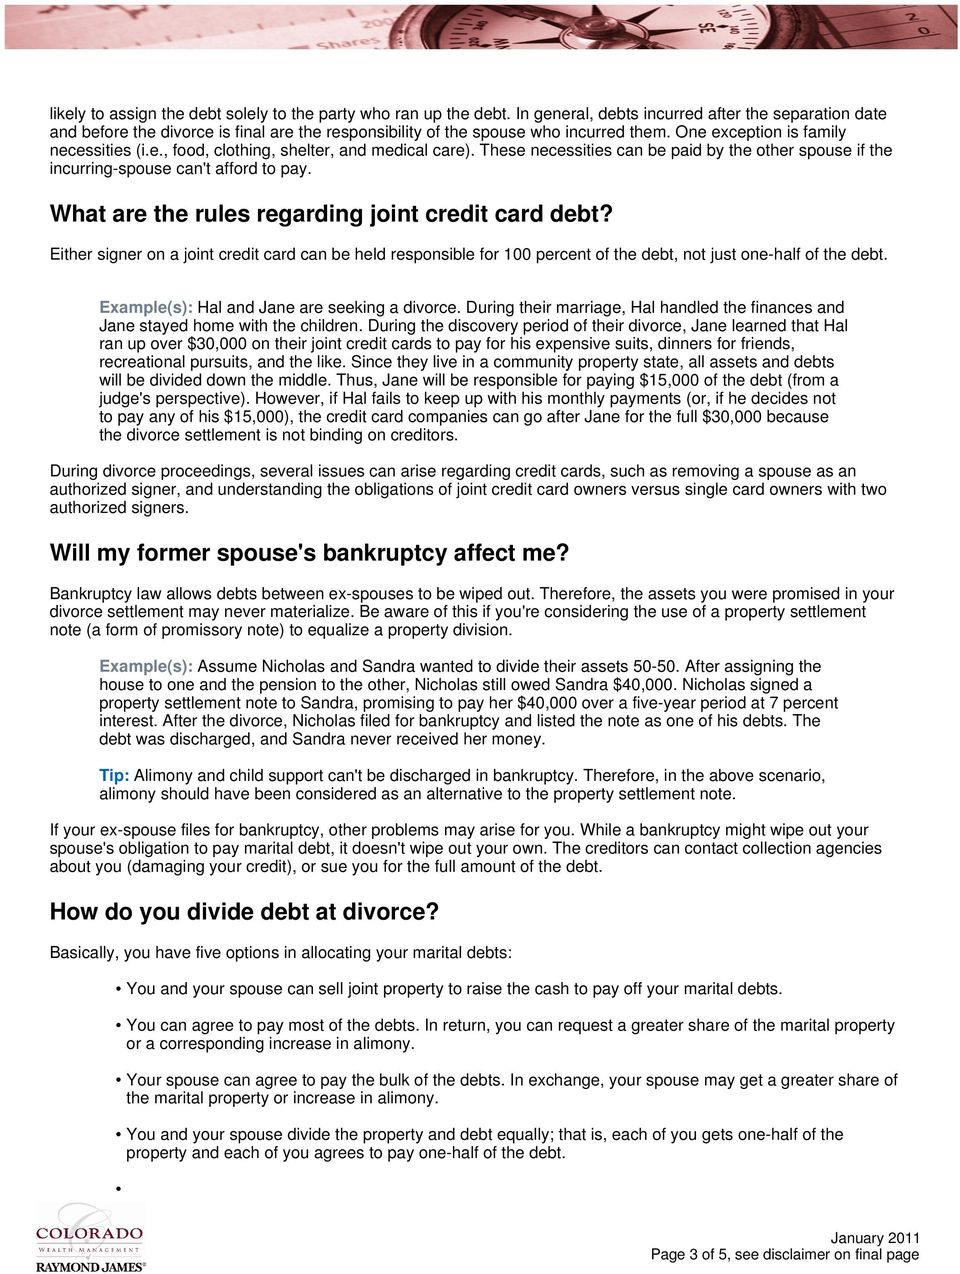 These necessities can be paid by the other spouse if the incurring-spouse can't afford to pay. What are the rules regarding joint credit card debt?